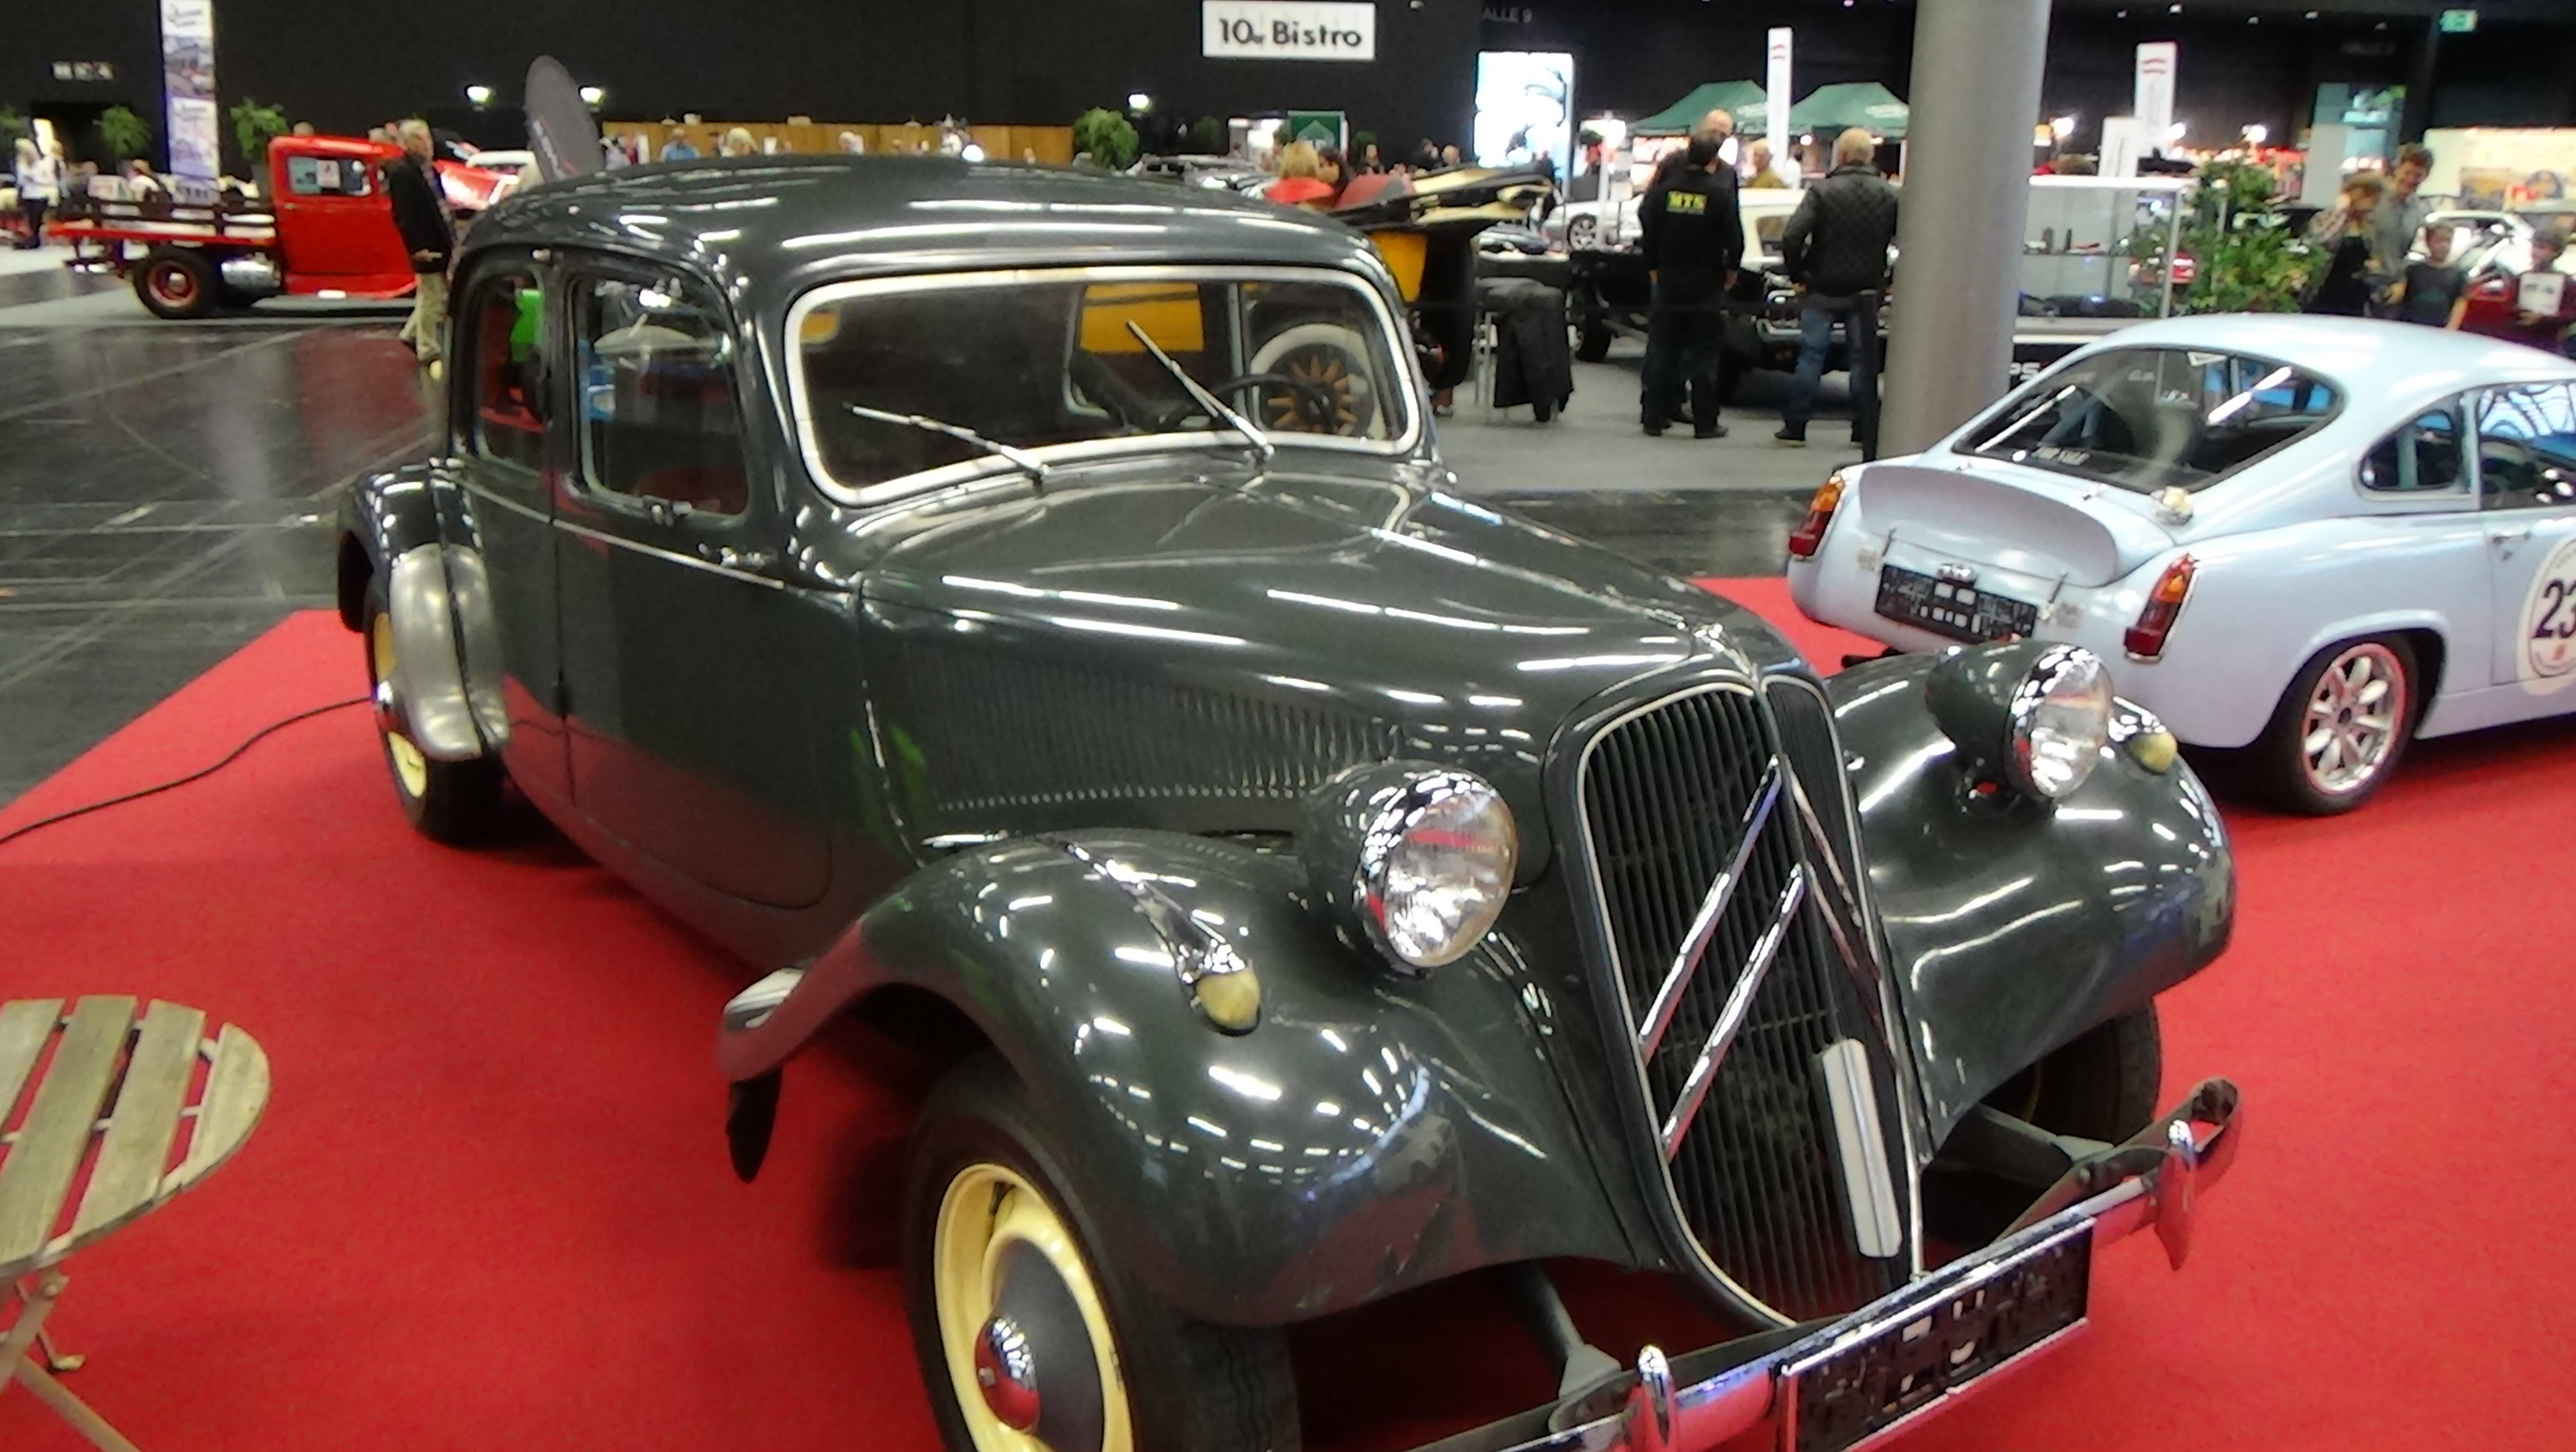 Citroen Traction Avant 1934 - 1957 Cabriolet #2